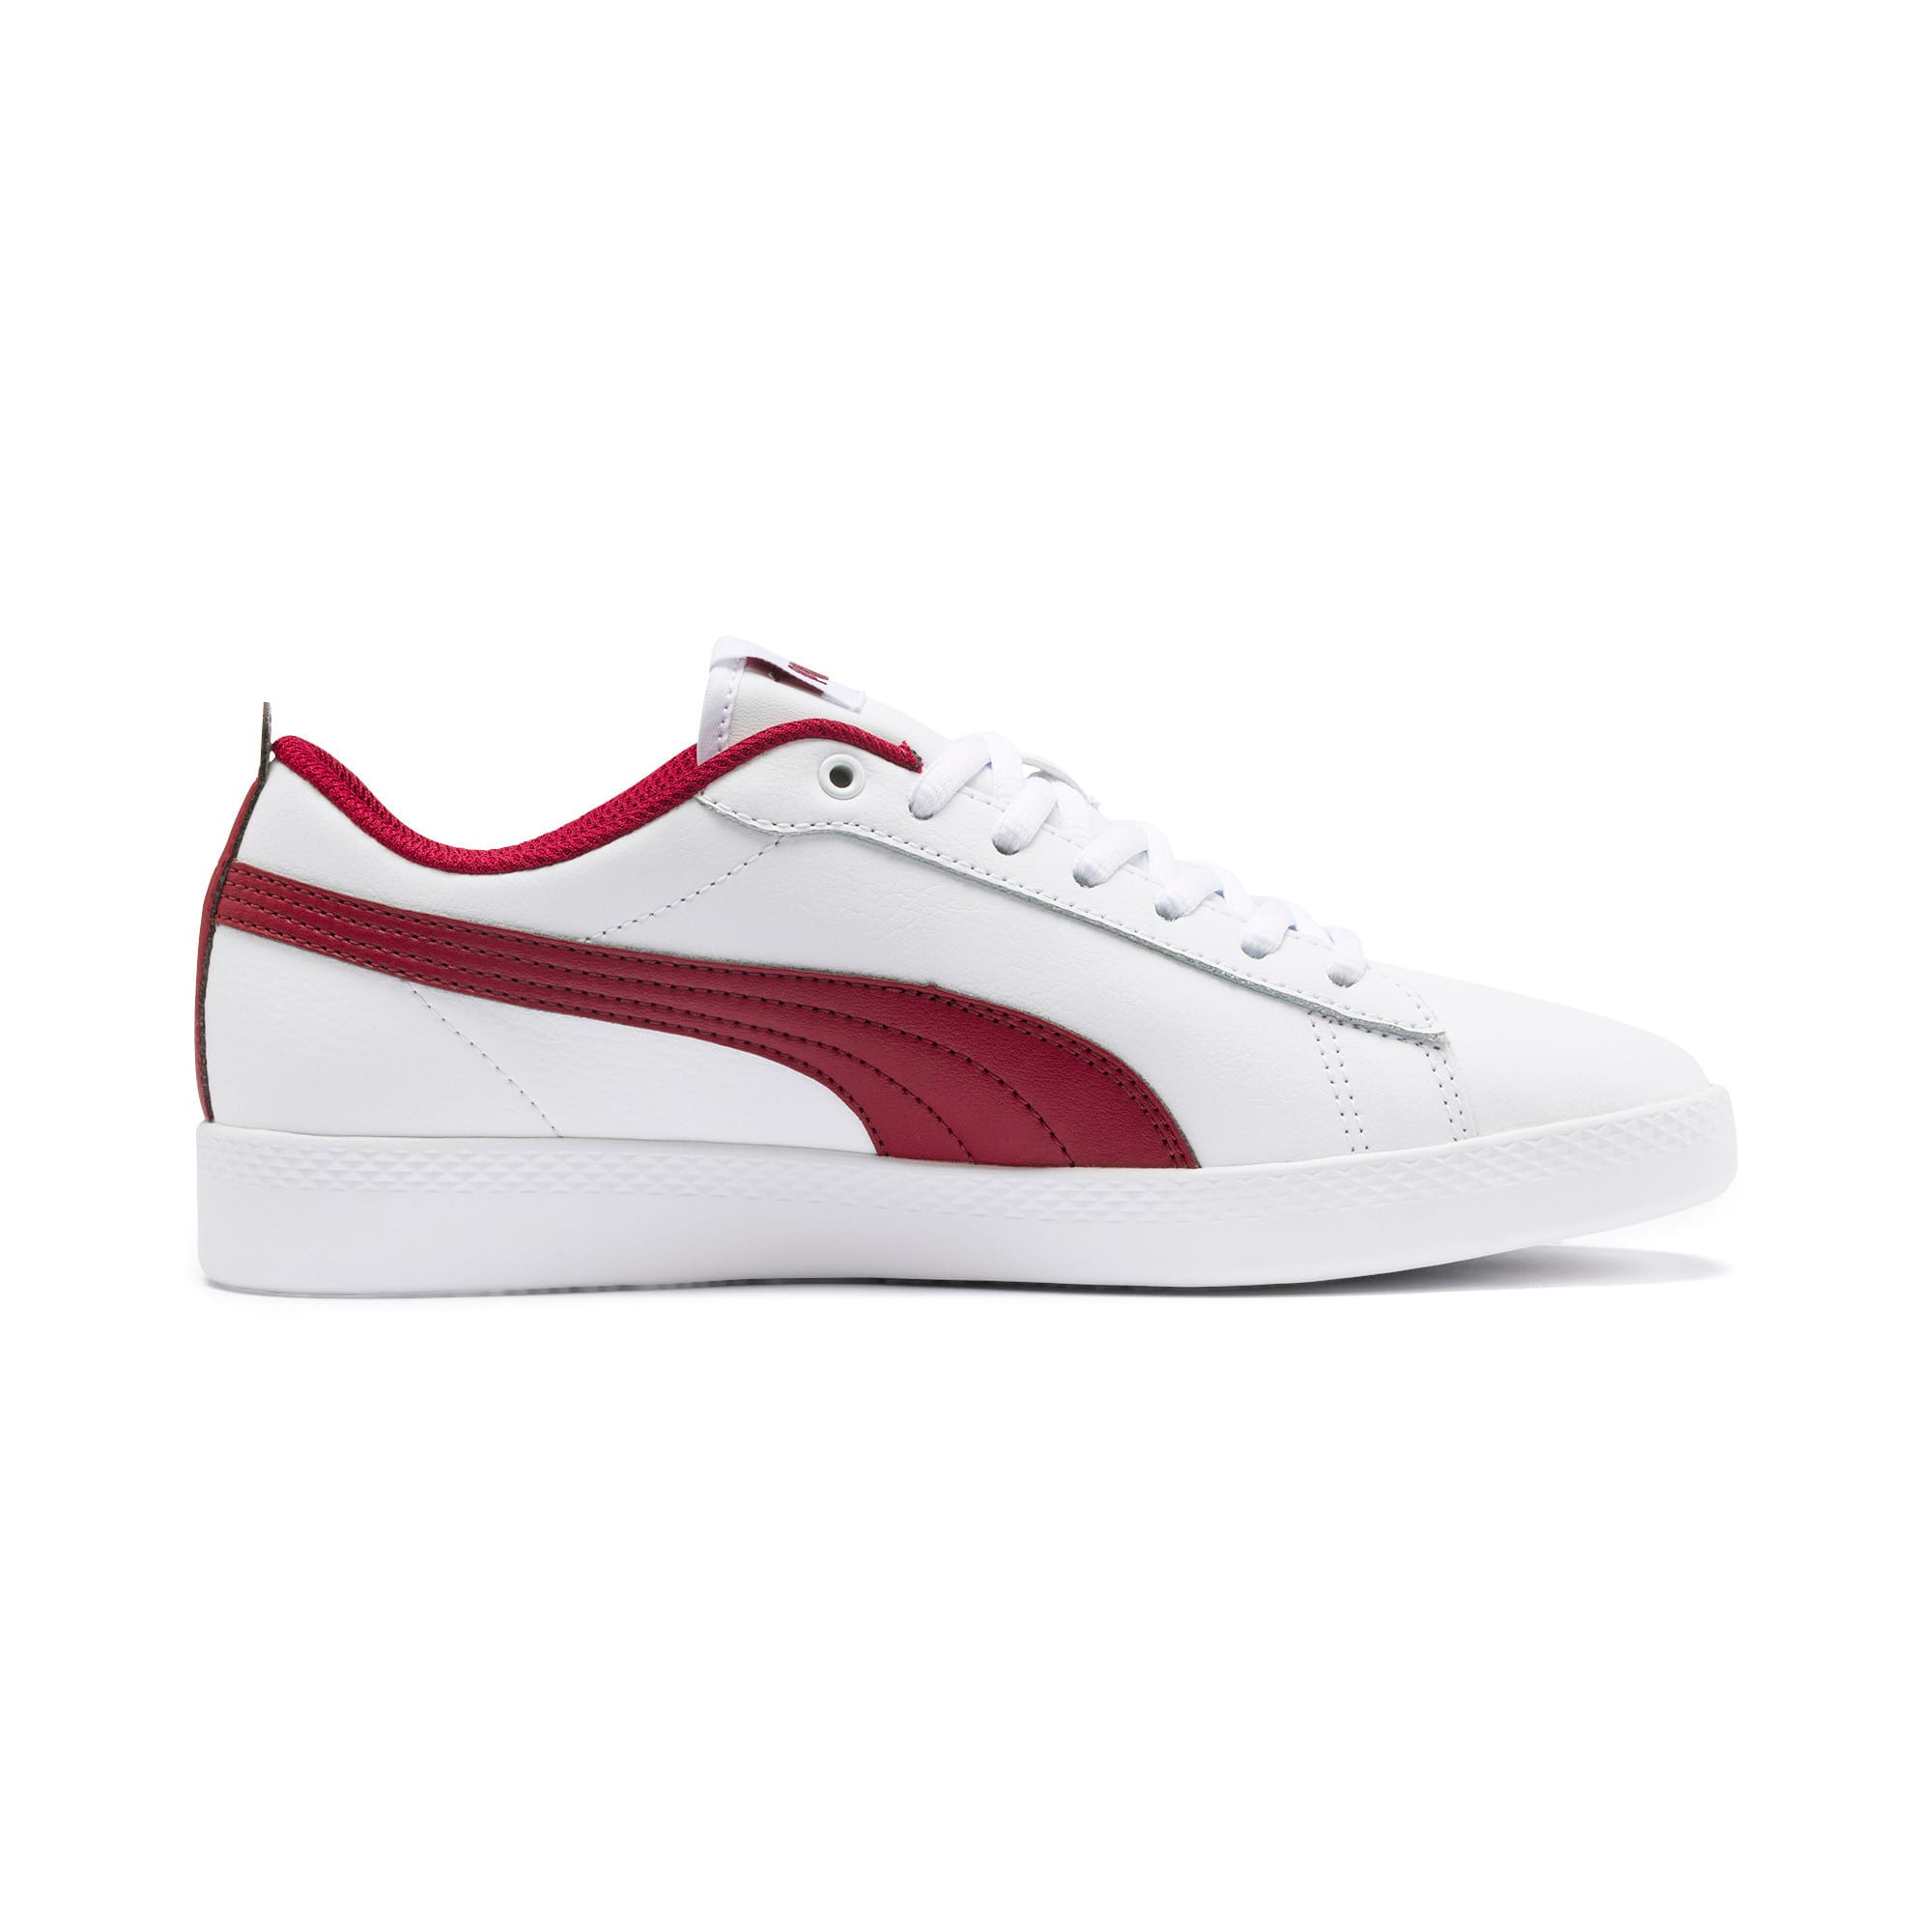 Thumbnail 6 of Basket en cuir Smash v2 pour femme, Puma White-Rhubarb, medium